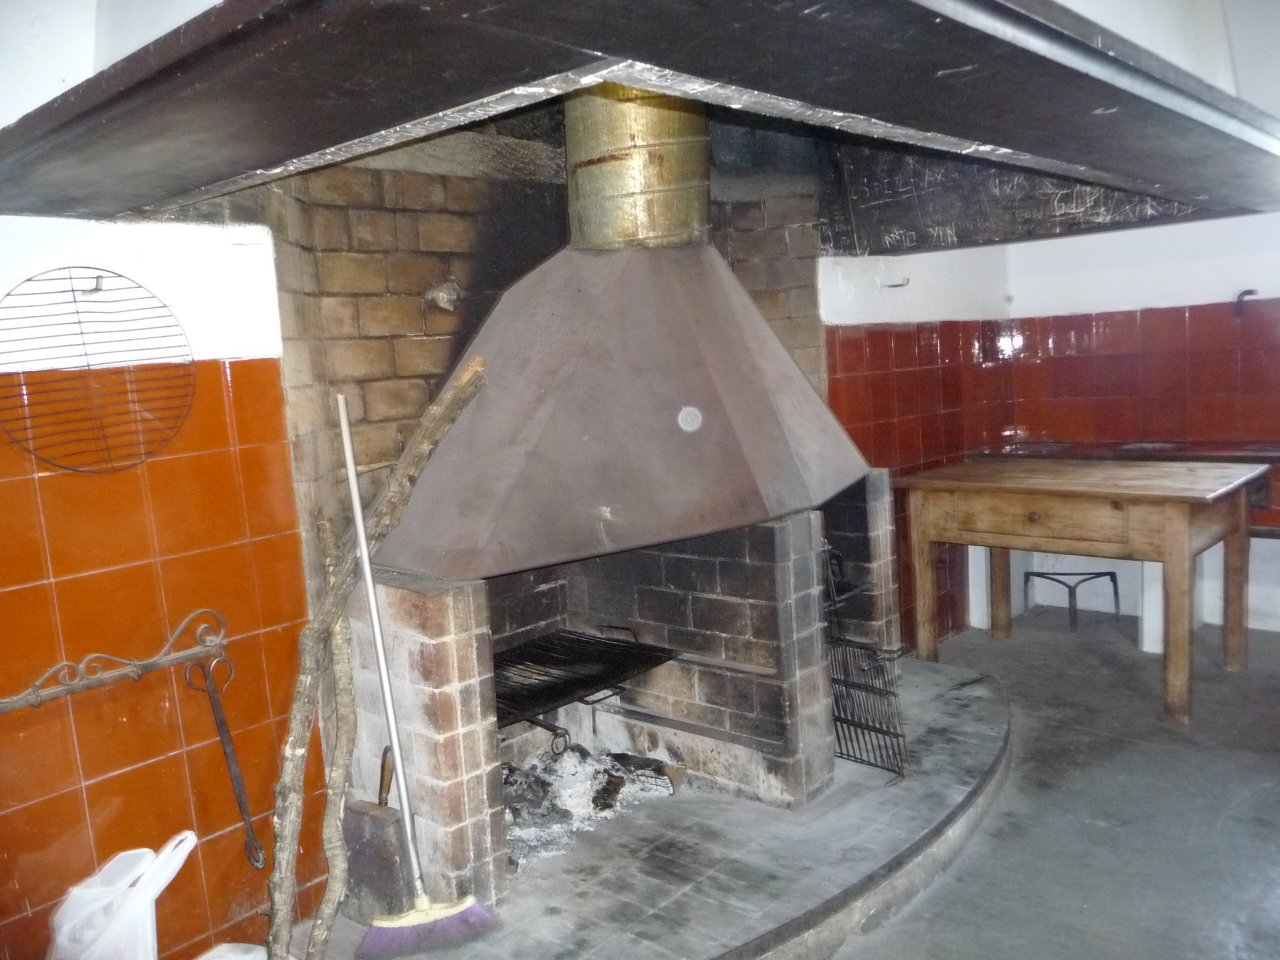 monastry puig maria kitchen fire